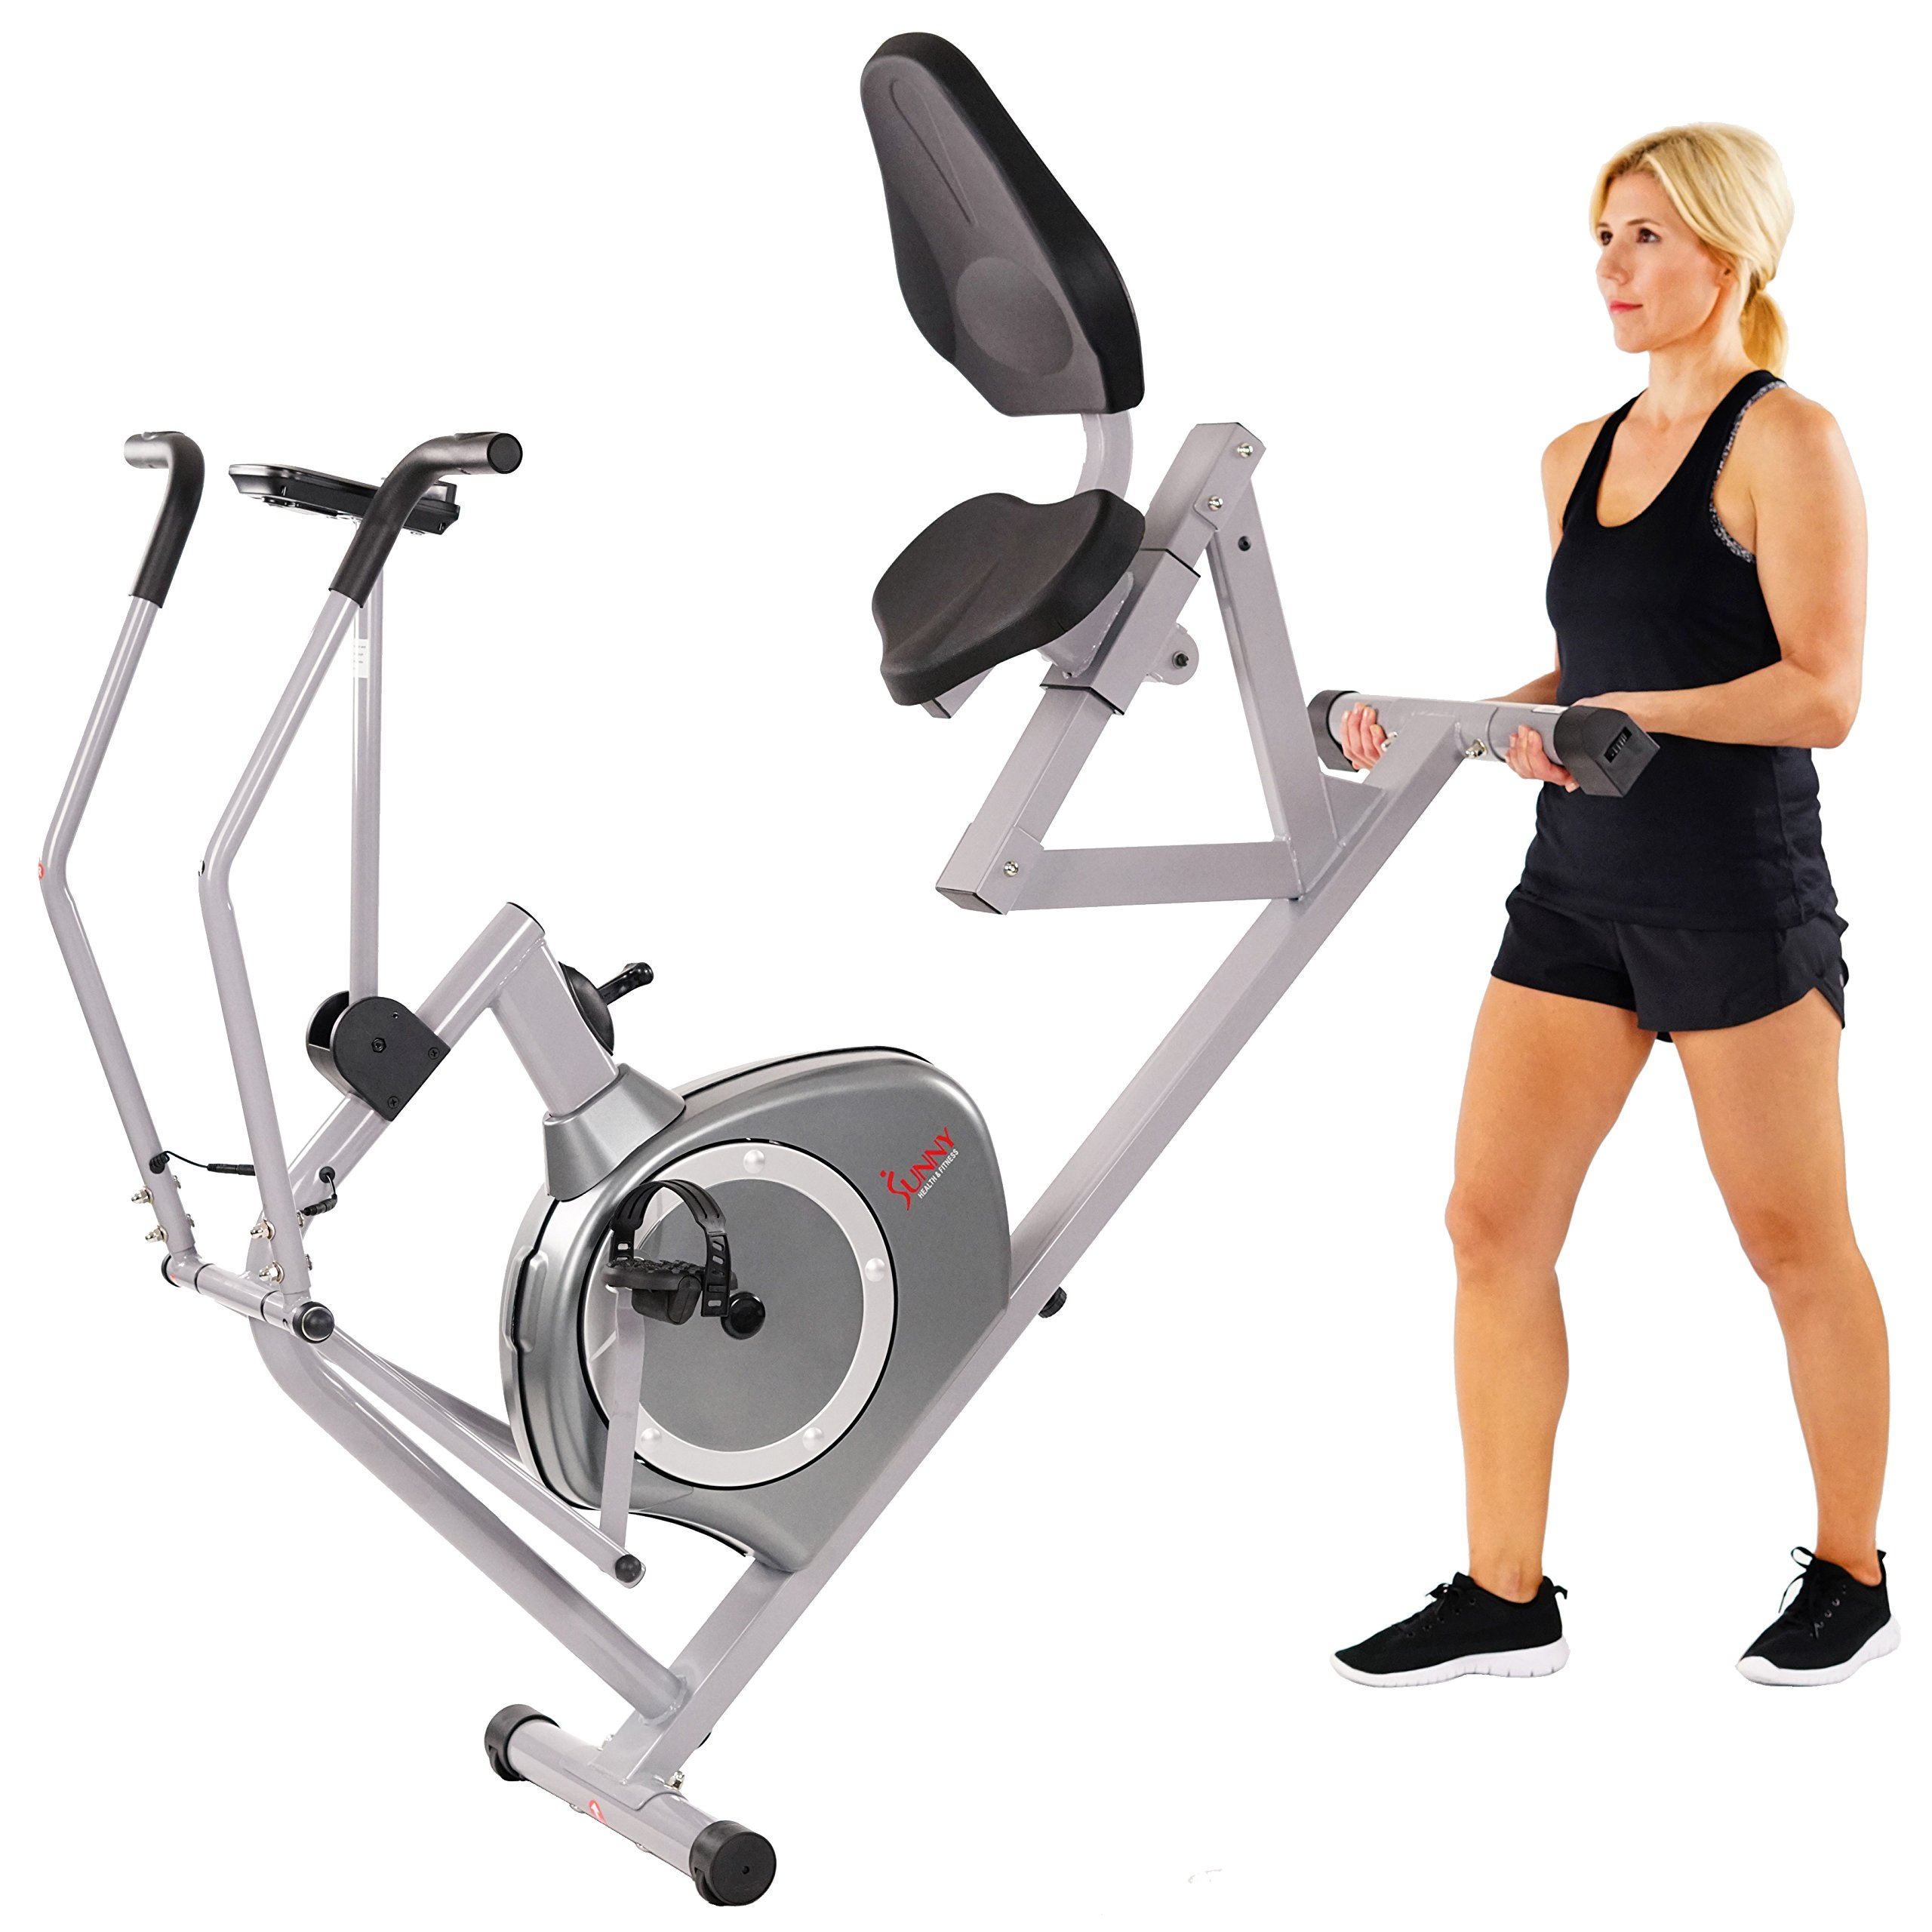 Sunny Health & Fitness Magnetic Recumbent Bike Exercise Bike, 350lb High Weight Capacity, Cross Training, Arm Exercisers, Monitor, Pulse Rate Monitoring - SF-RB4708 by Sunny Health & Fitness (Image #13)